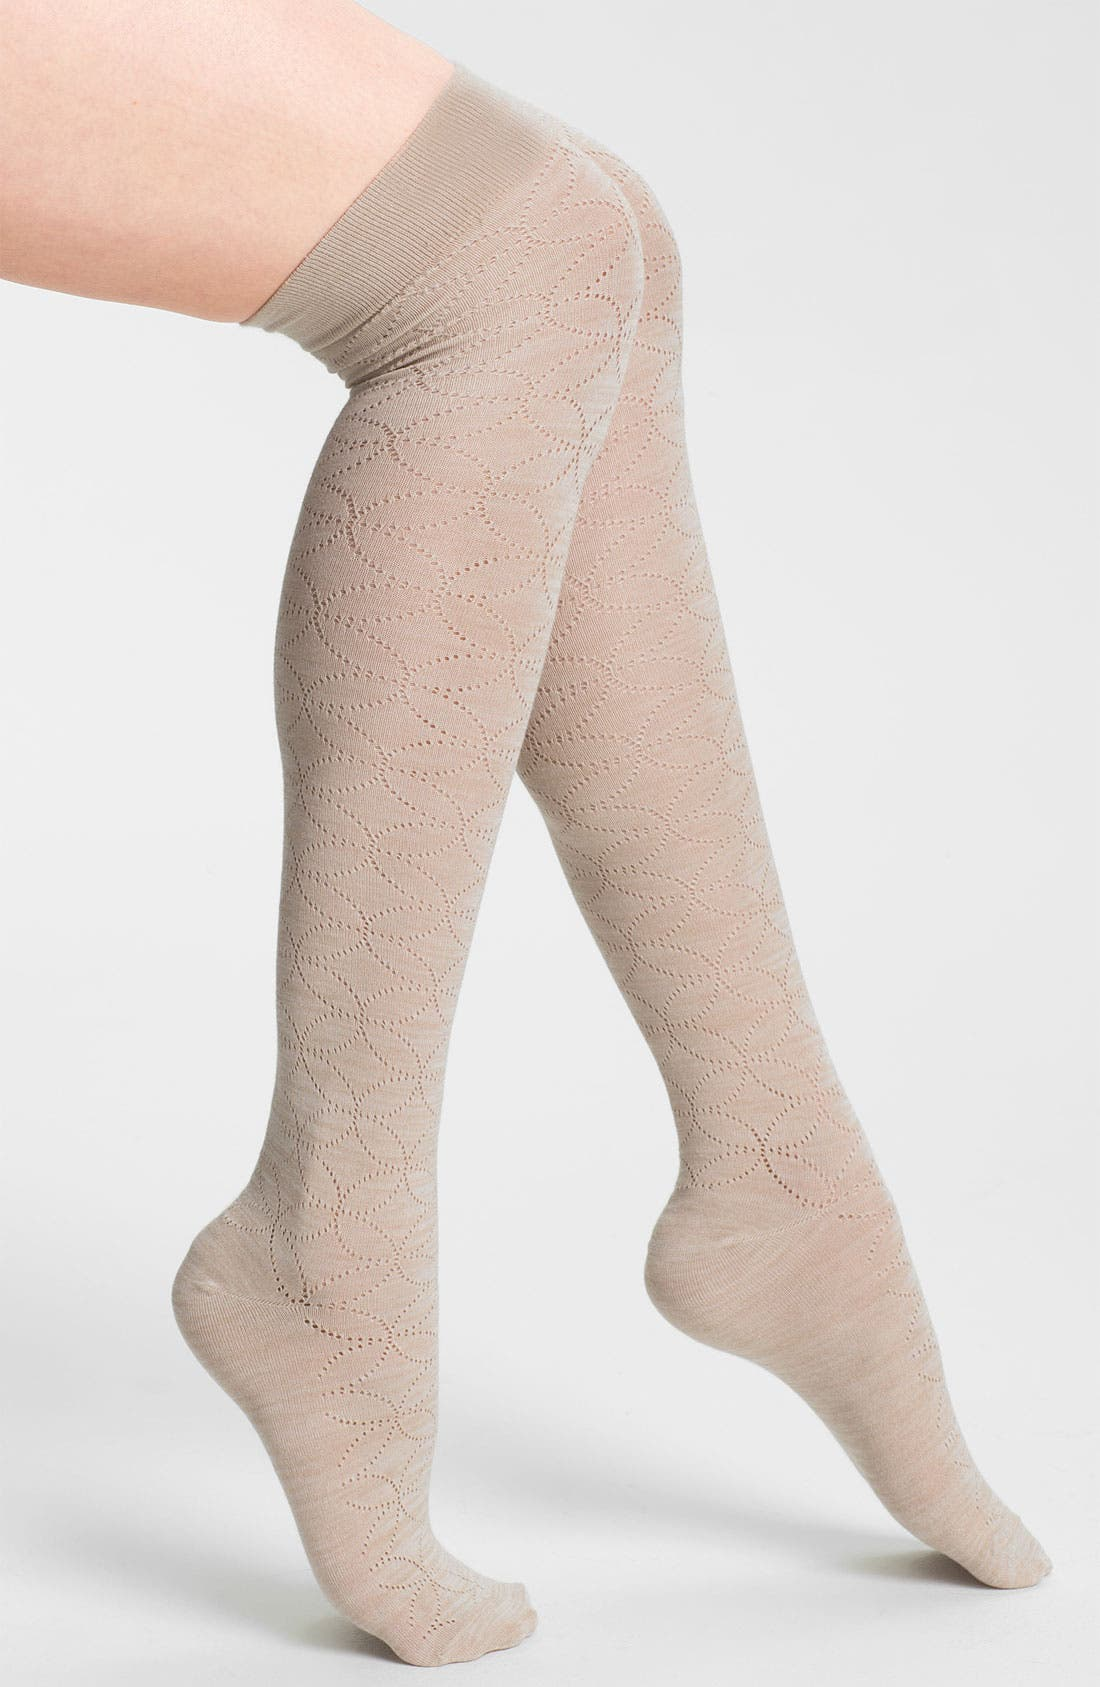 Main Image - Nordstrom 'Inside the Lines' Over the Knee Socks